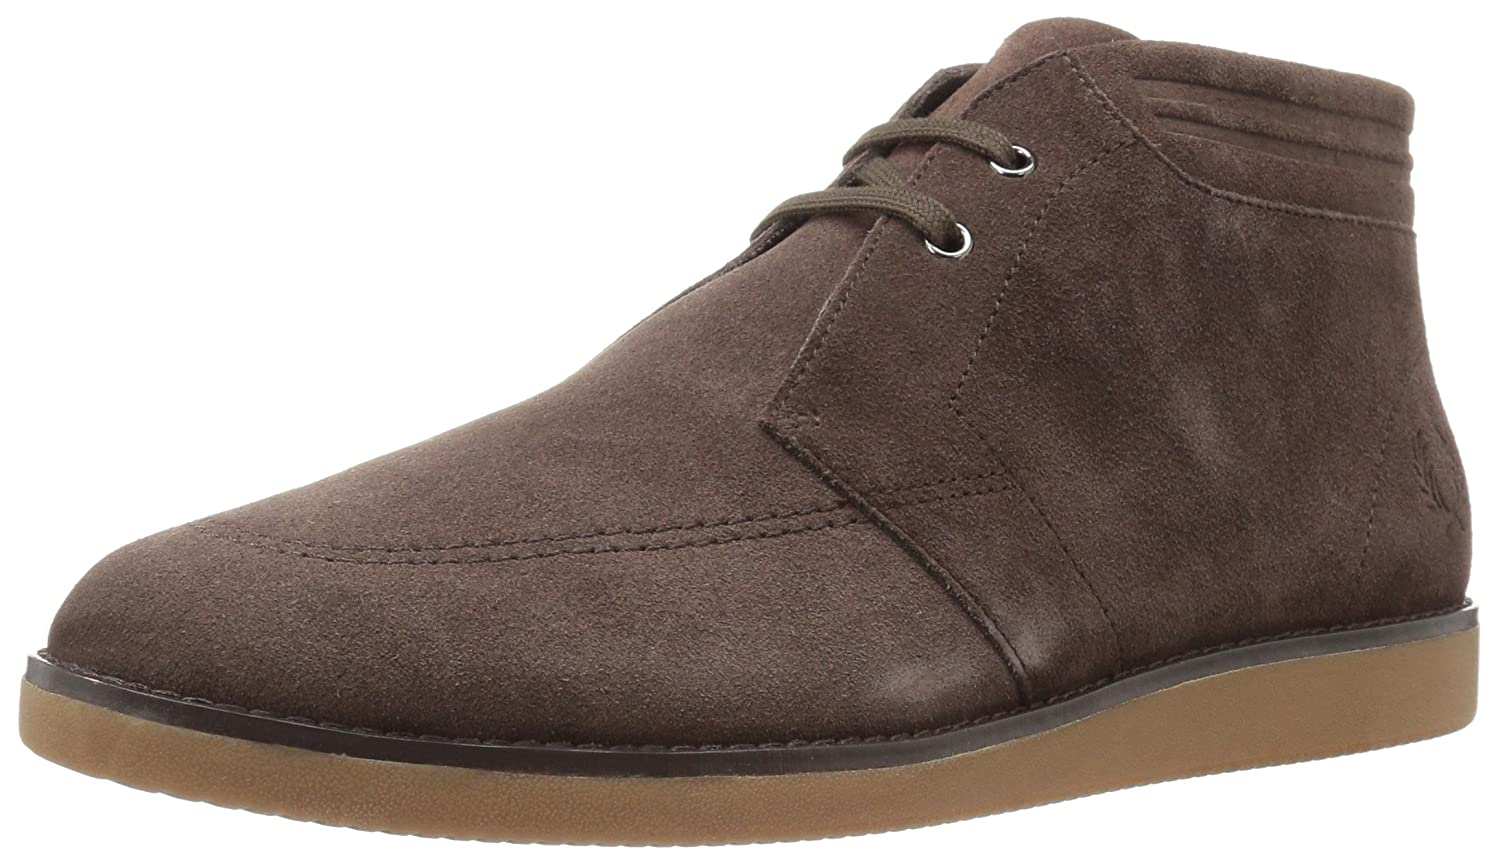 2ef77a49a3f Fred Perry Men's Southall Mid Suede Chukka Boot: Amazon.co.uk: Shoes ...